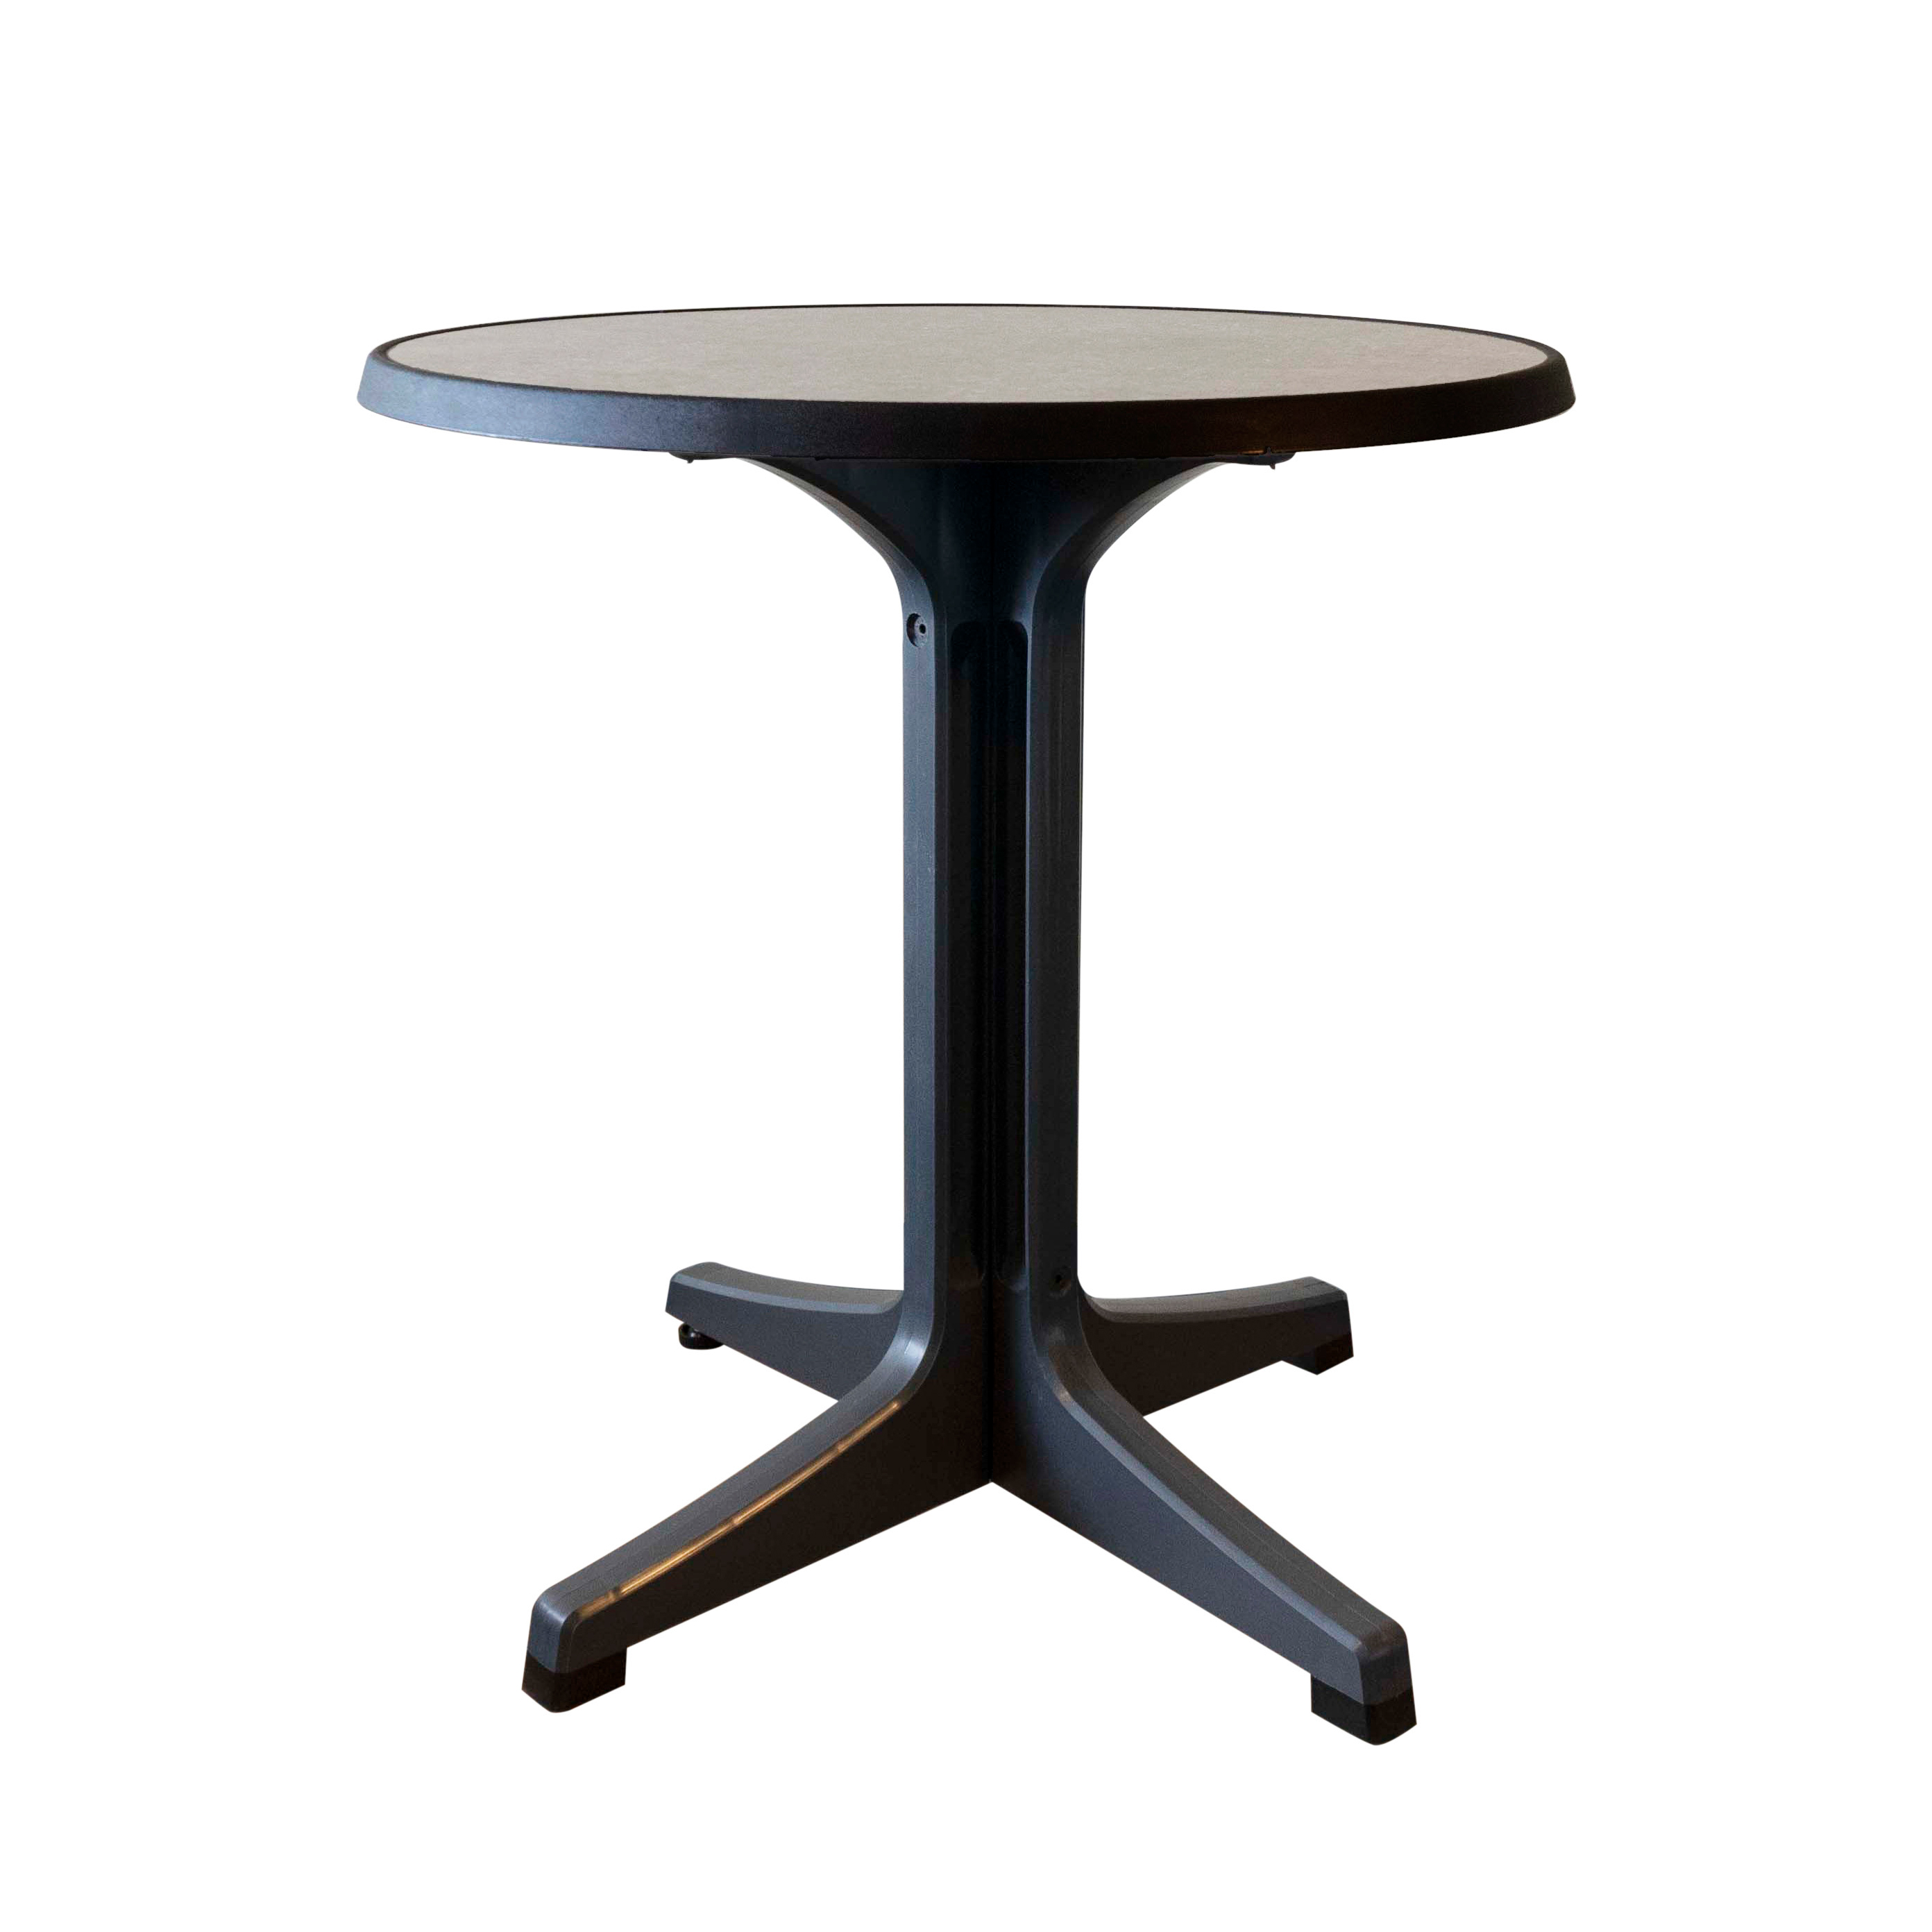 Grosfillex US287746 table, outdoor